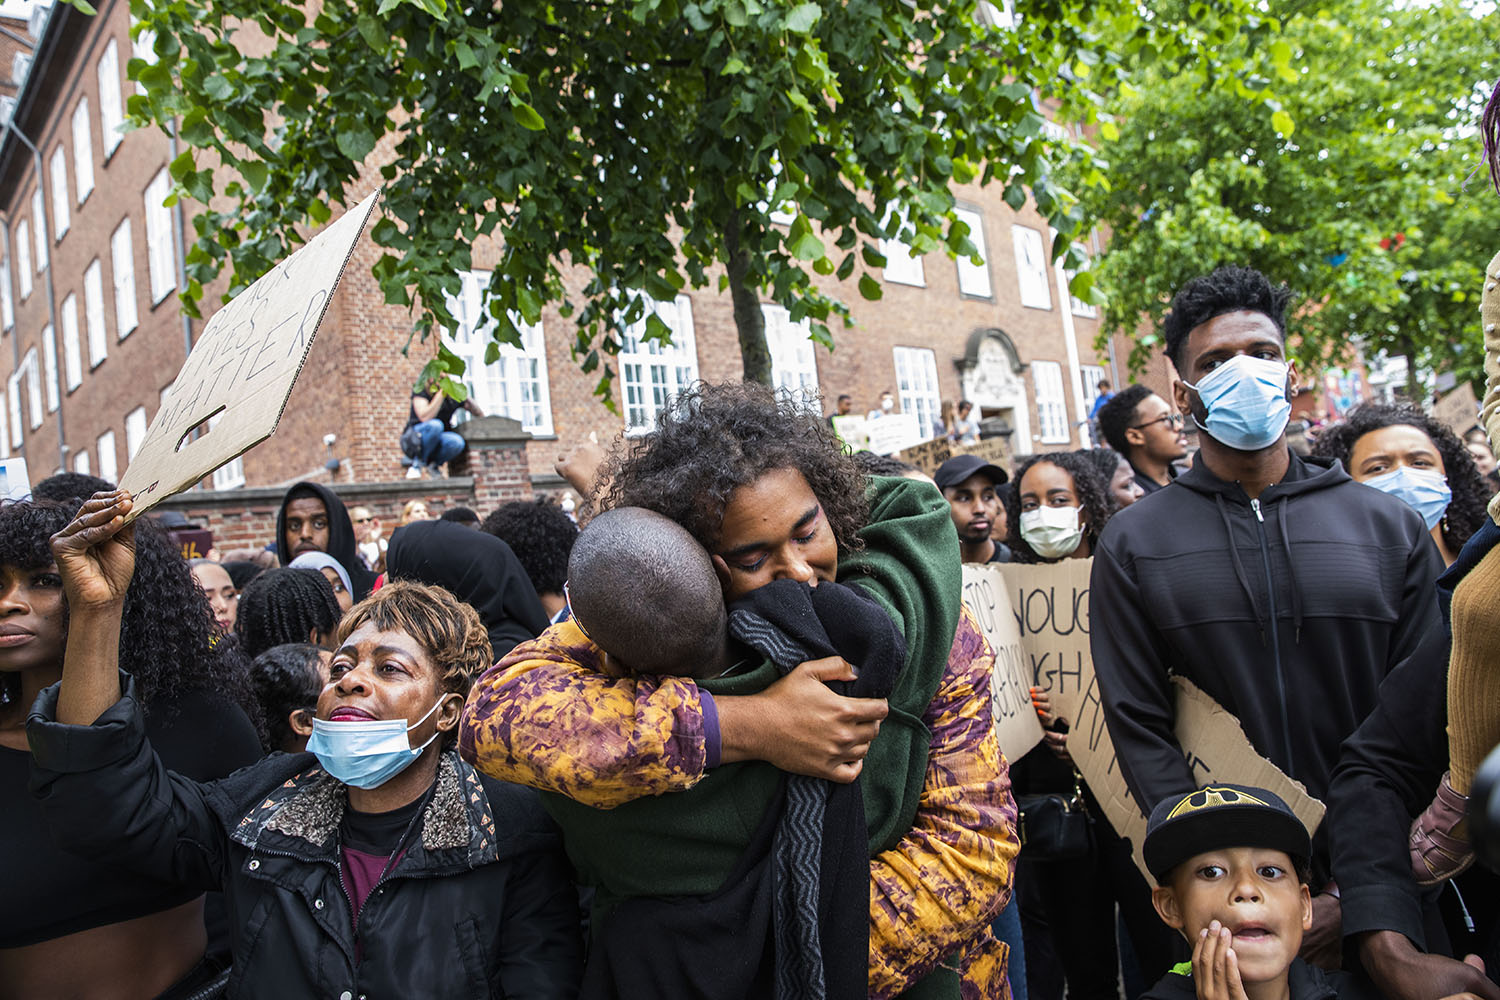 BlackLivesMatterDK_DEMO_070620_HelenaLundquist_mindre_5